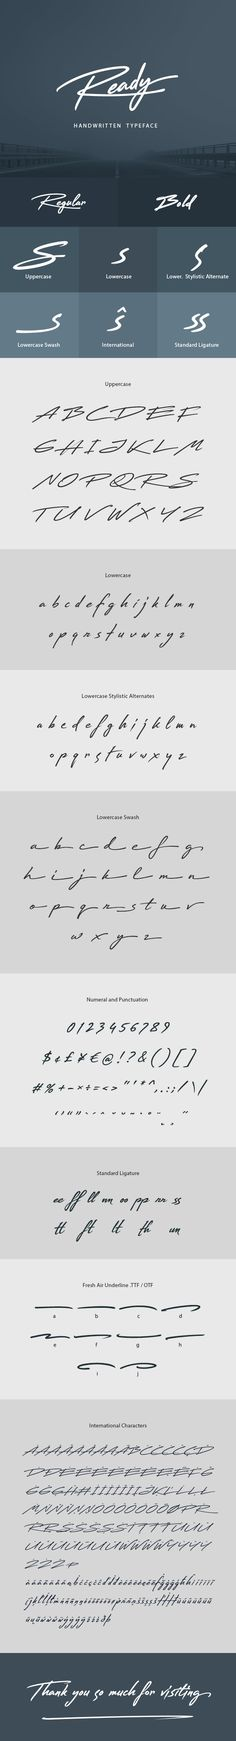 Ready Handwritten Font by sunnytudu ¡®Reasdy¡¯ is a nice handwritten Typeface. It gives a complete authentic feel on your text. Total 377 glyphs available including al